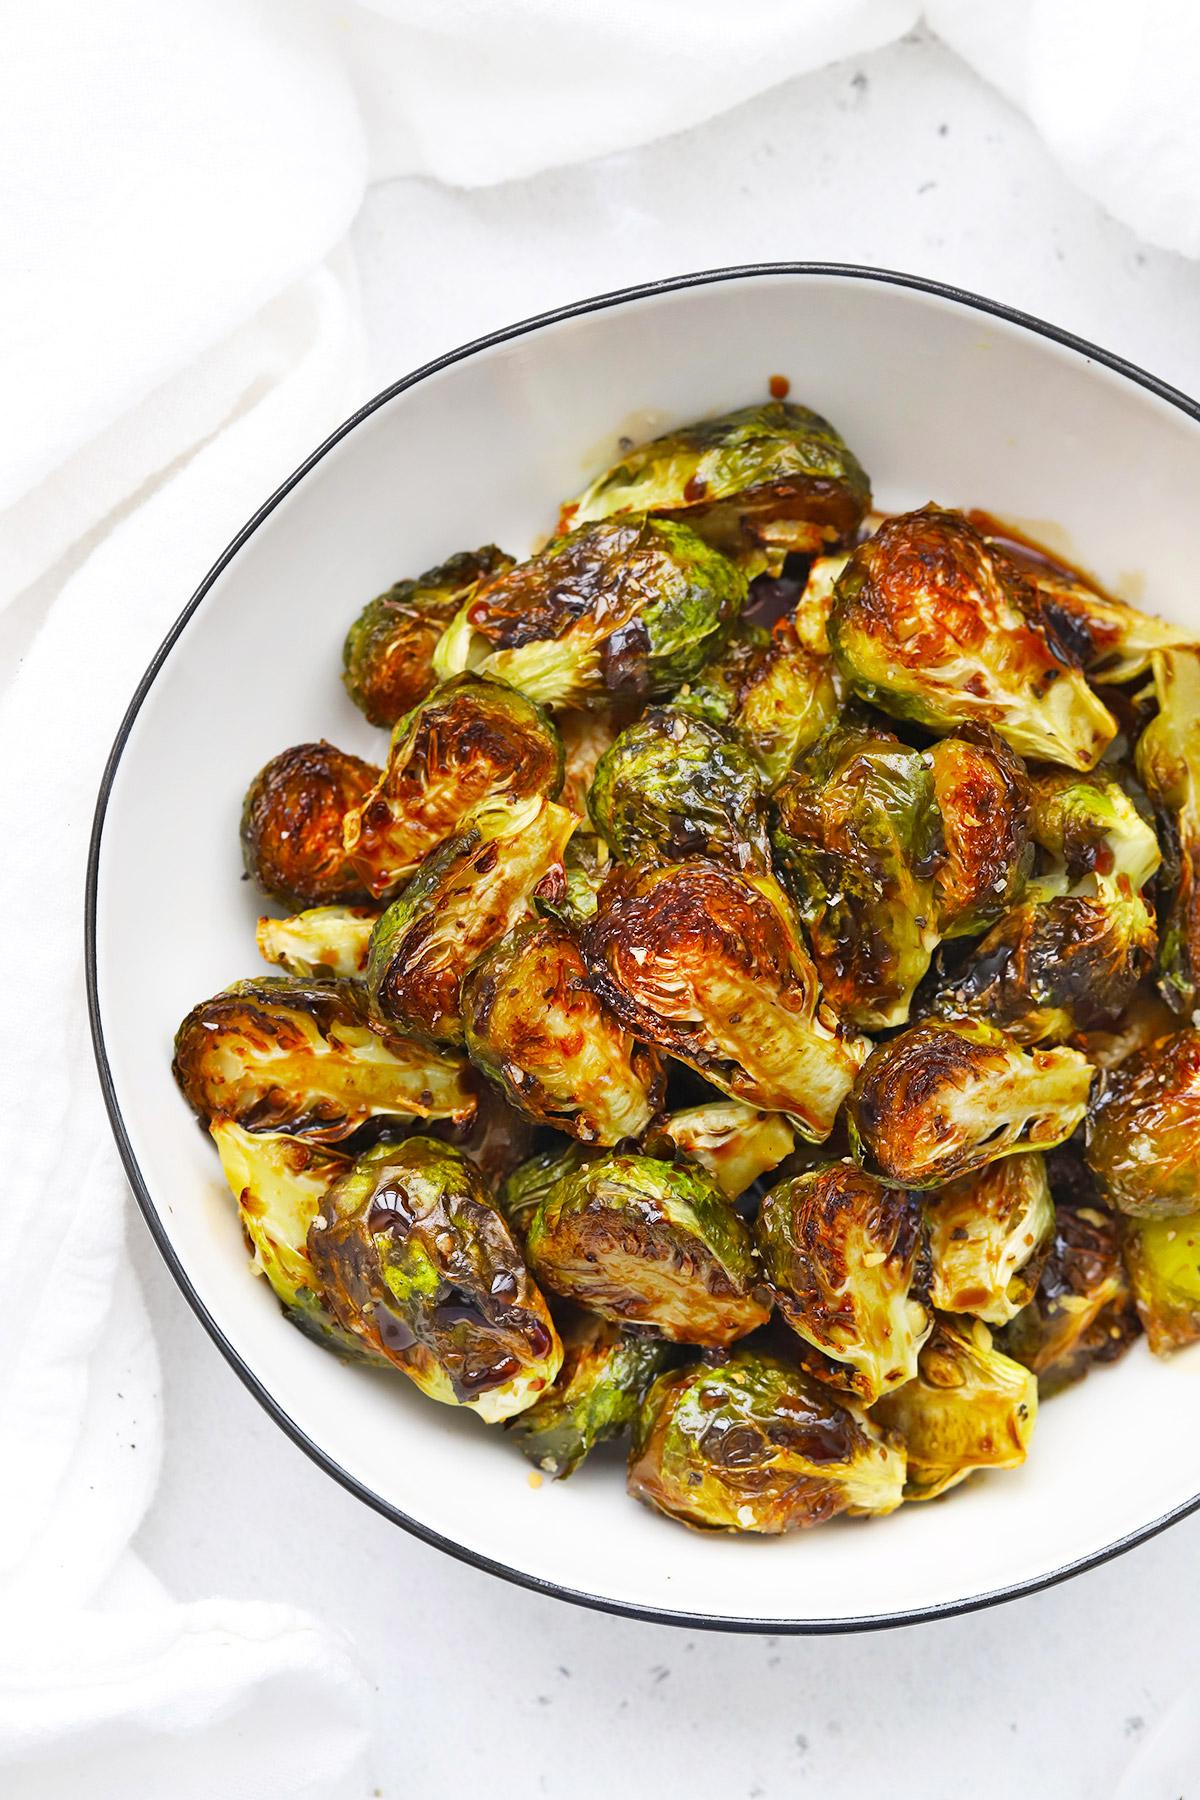 Overhead view of a bowl of roasted balsamic Brussels sprouts